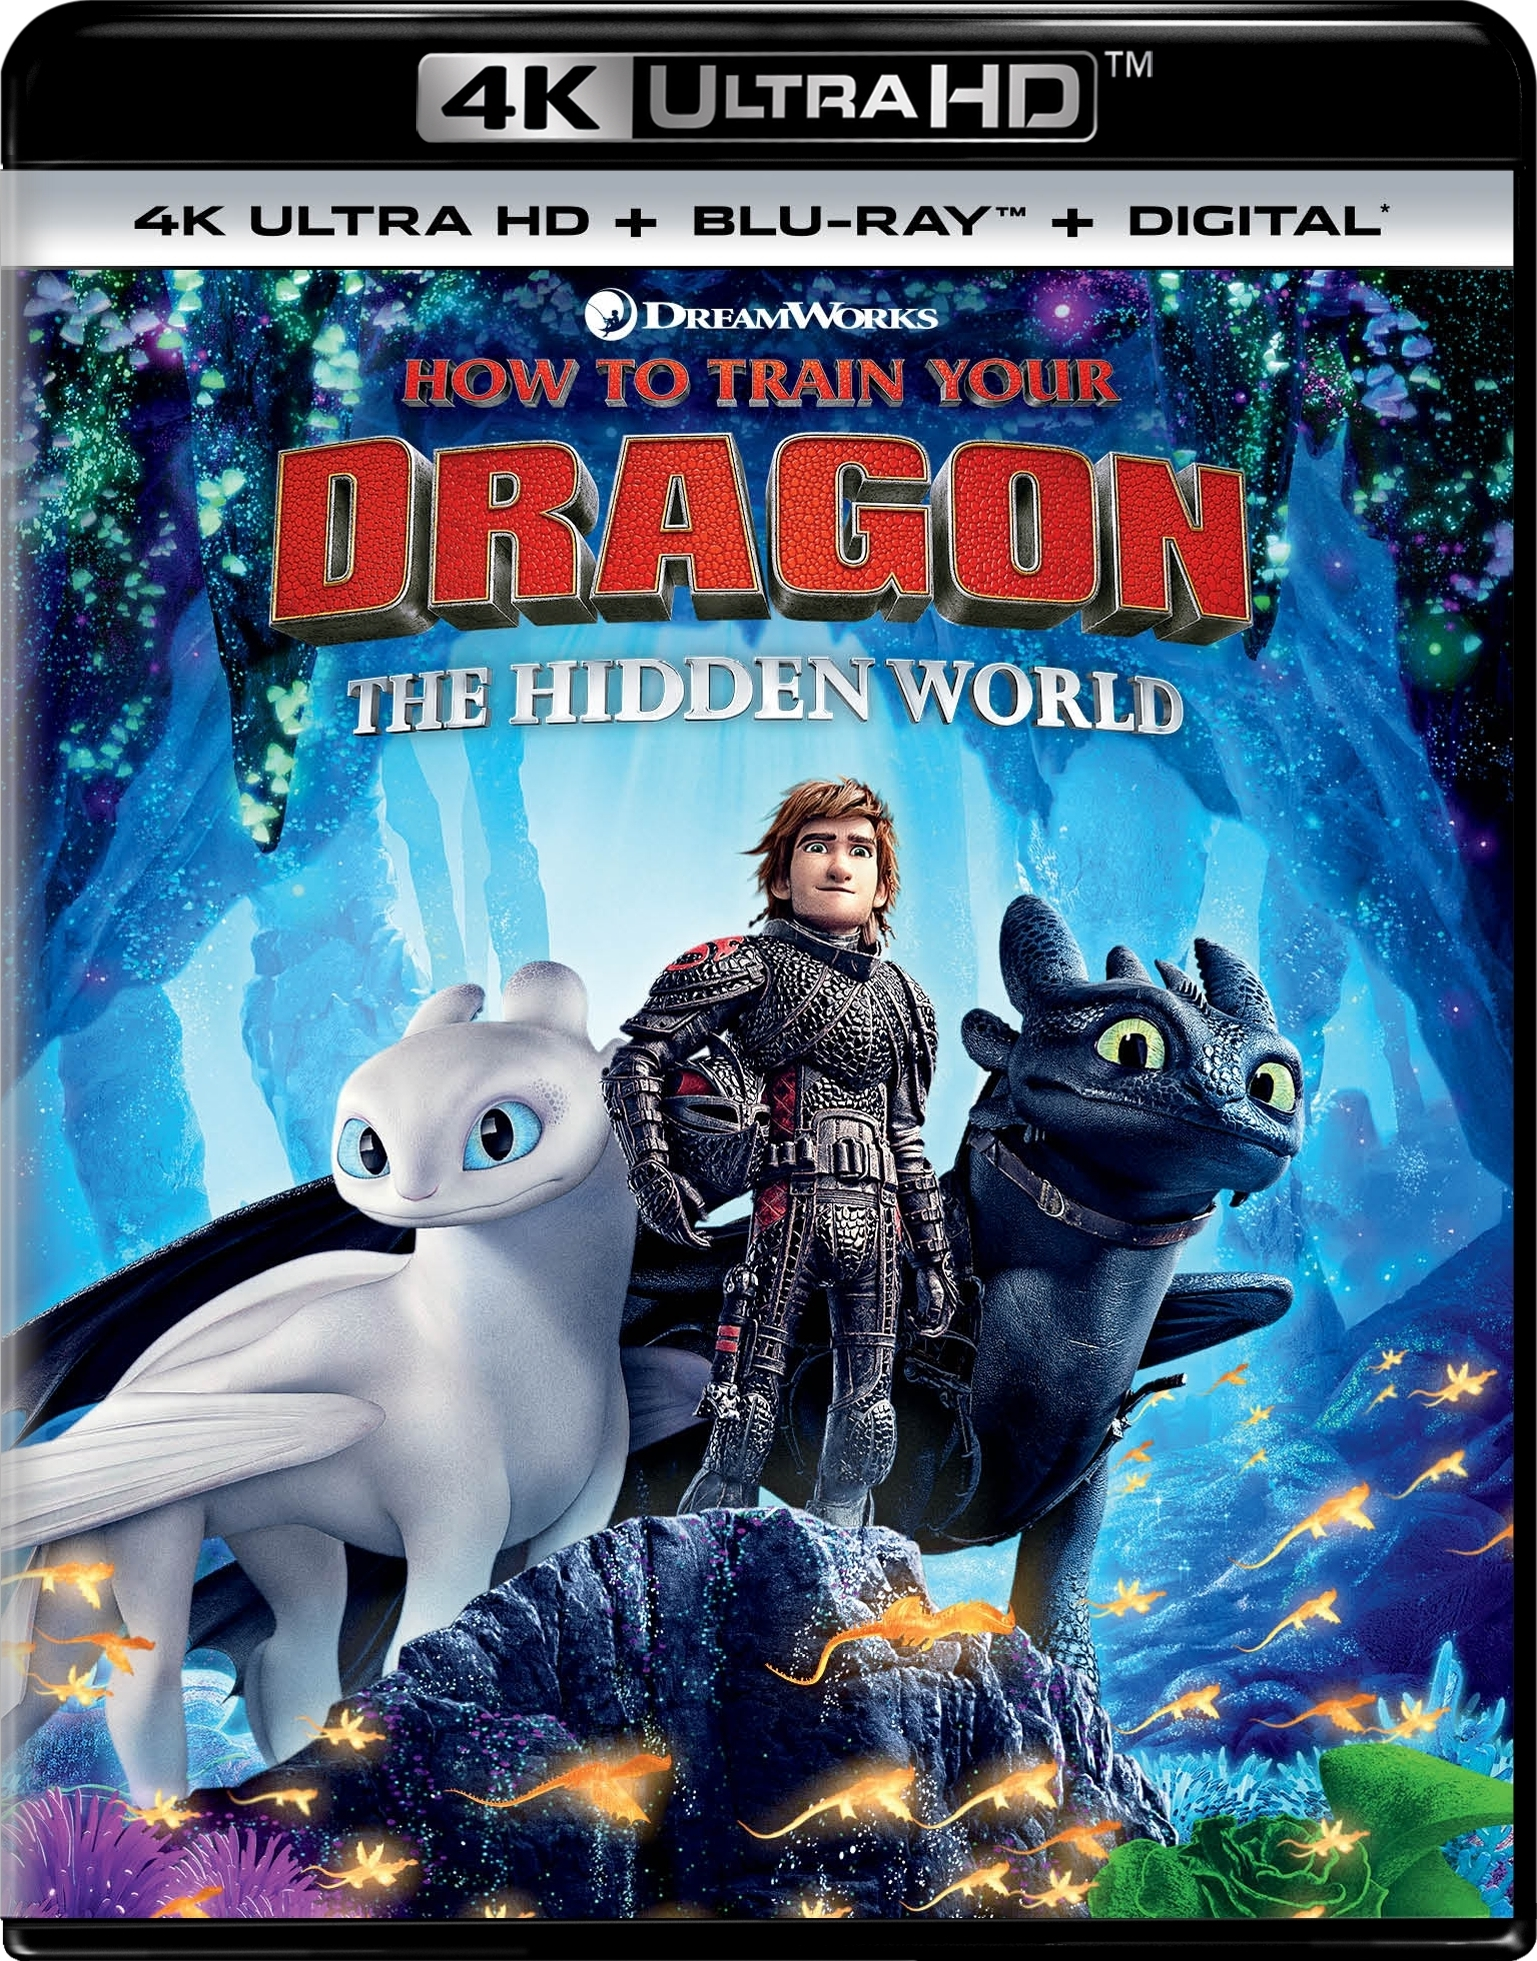 How to Train Your Dragon 3: The Hidden World (4K Ultra HD Blu-ray)(Pre-order / TBA)